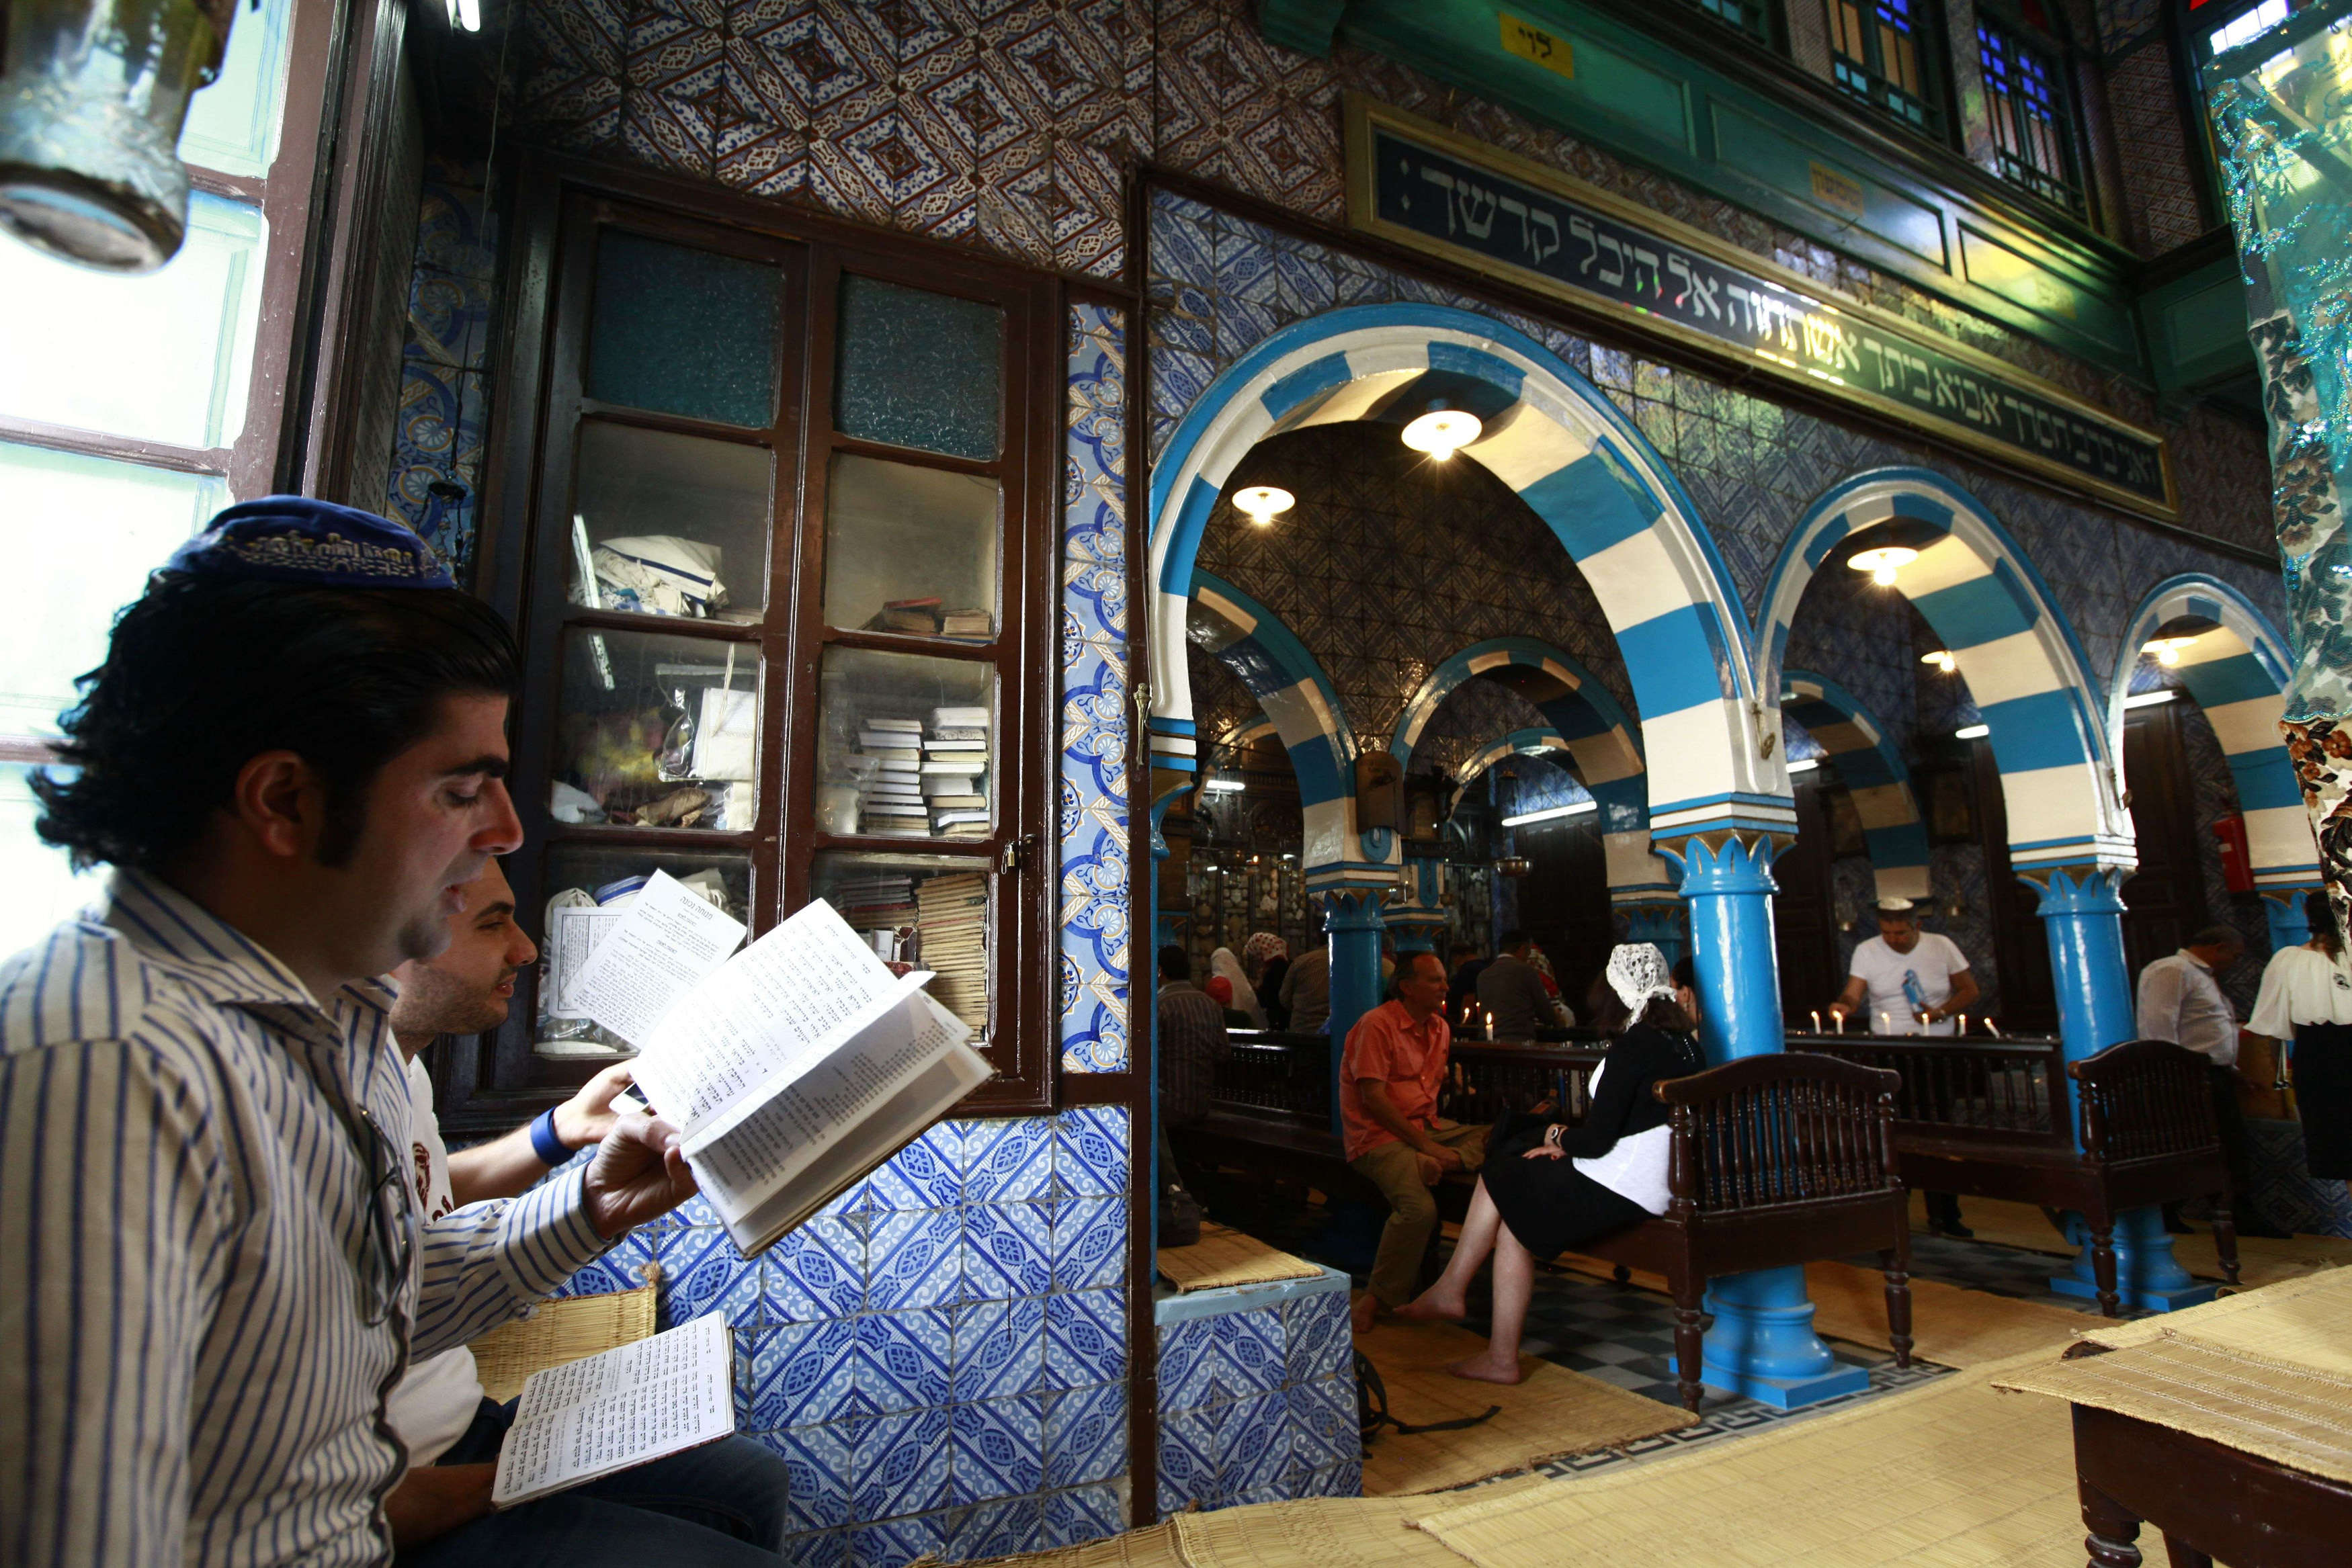 Jewish worshippers pray during a pilgrimage to the El Ghriba synagogue in Djerba, Tunisia (ANIS MILI / REUTERS)